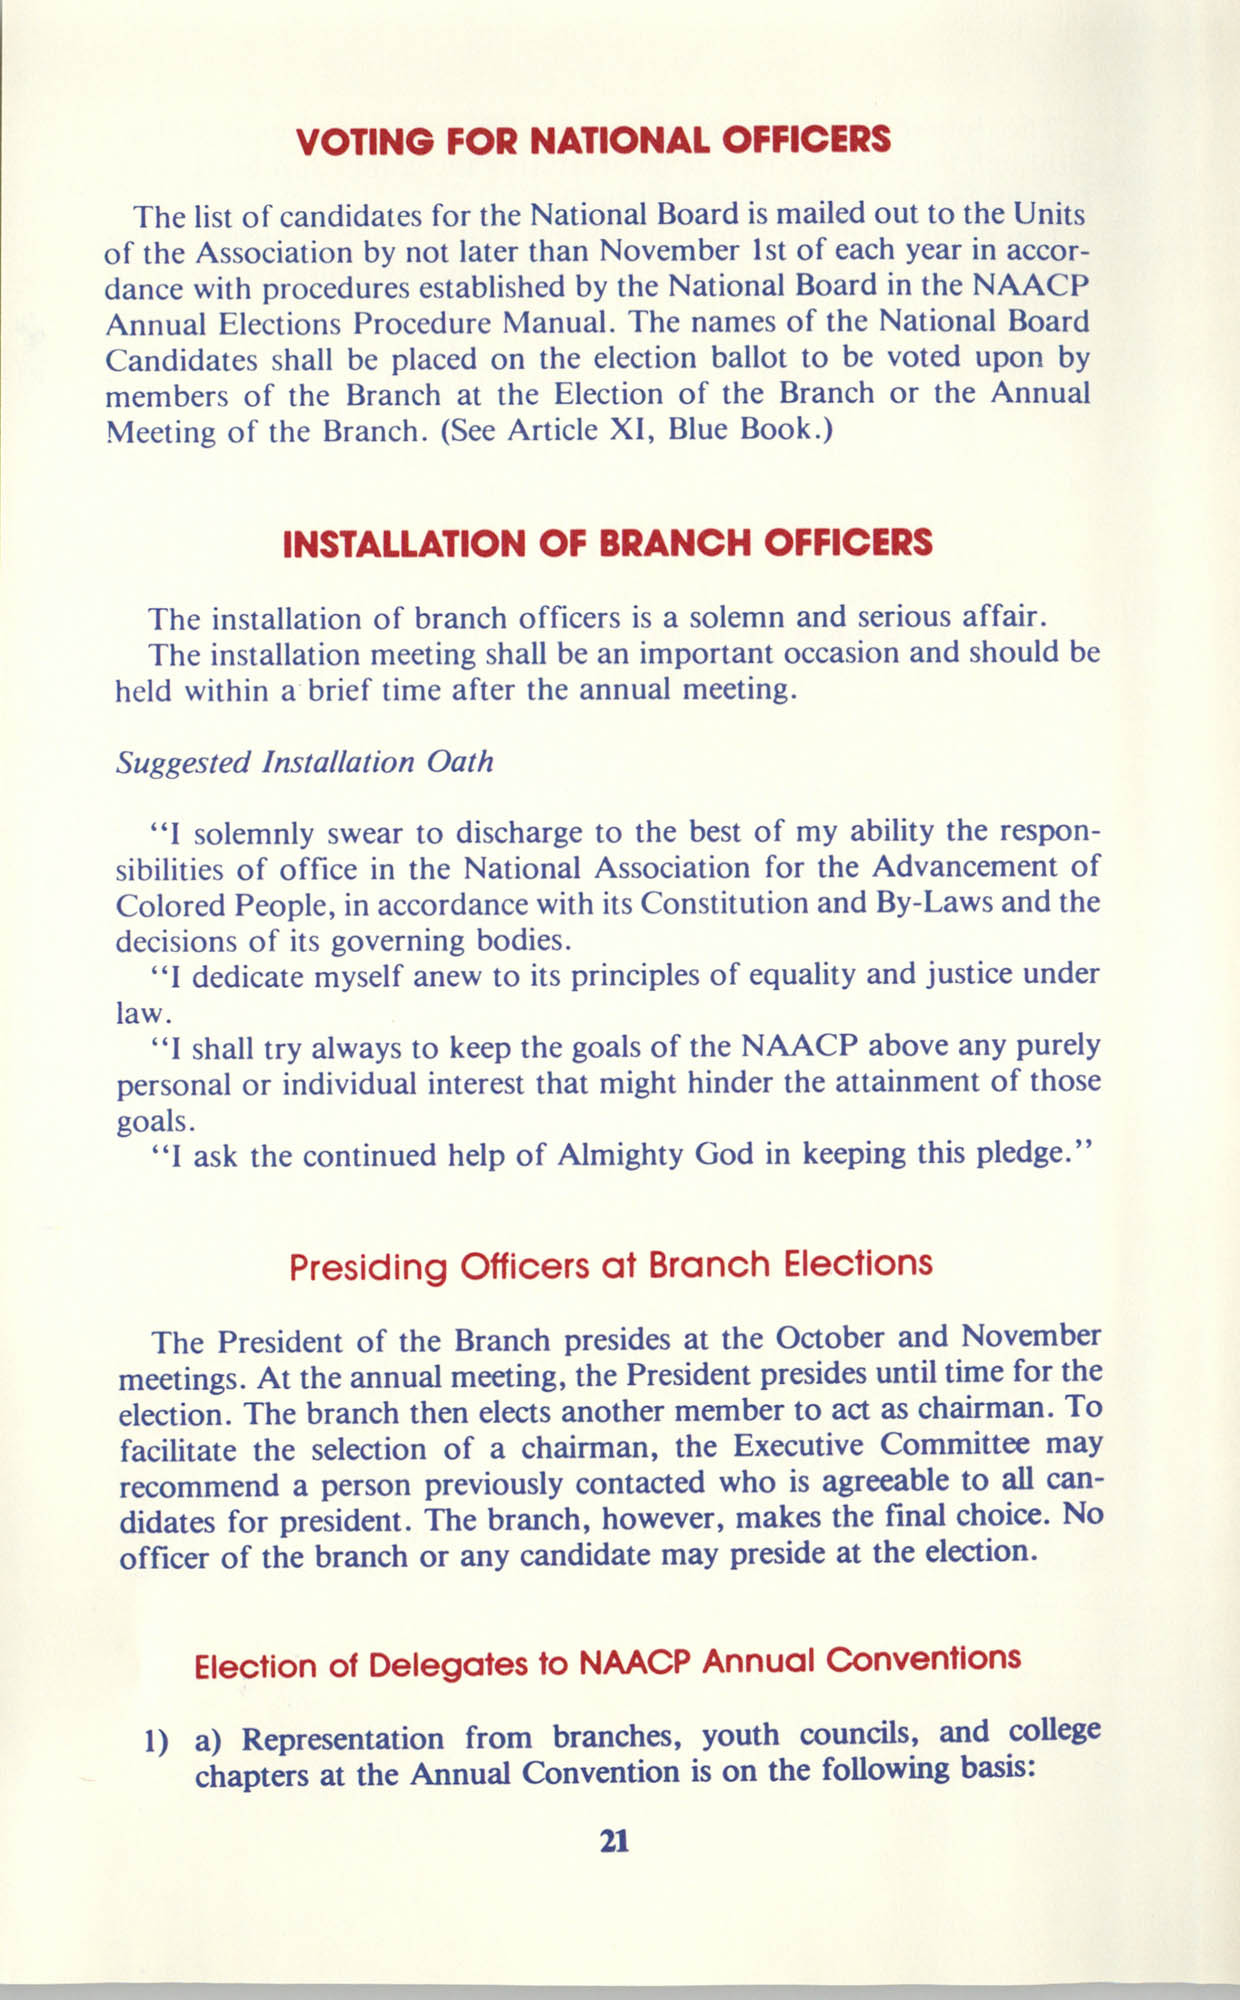 Manual on Branch Election Procedure, Page 21